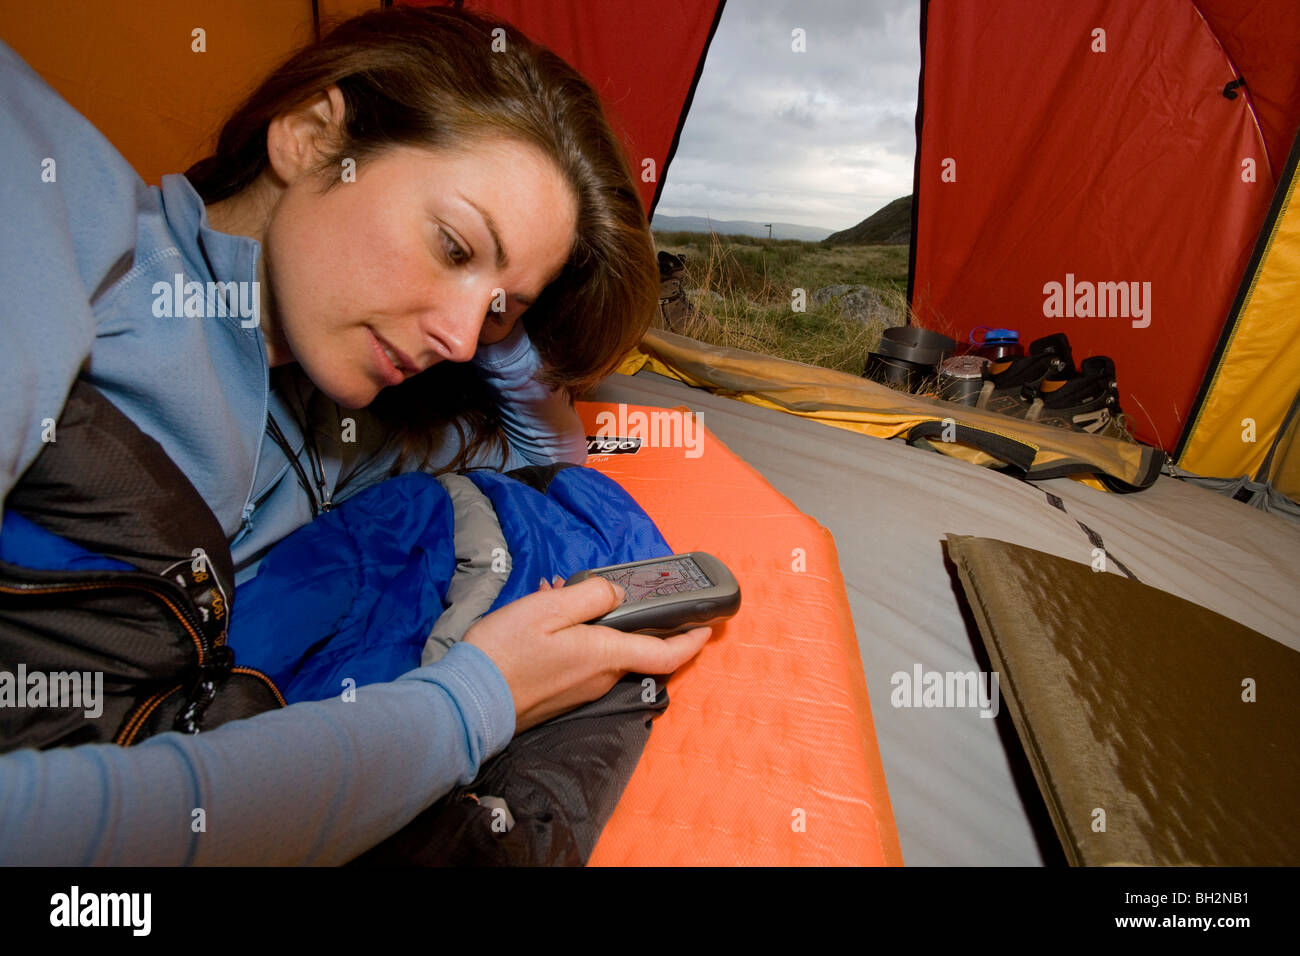 Female hiker in tent with GPS unit - Stock Image